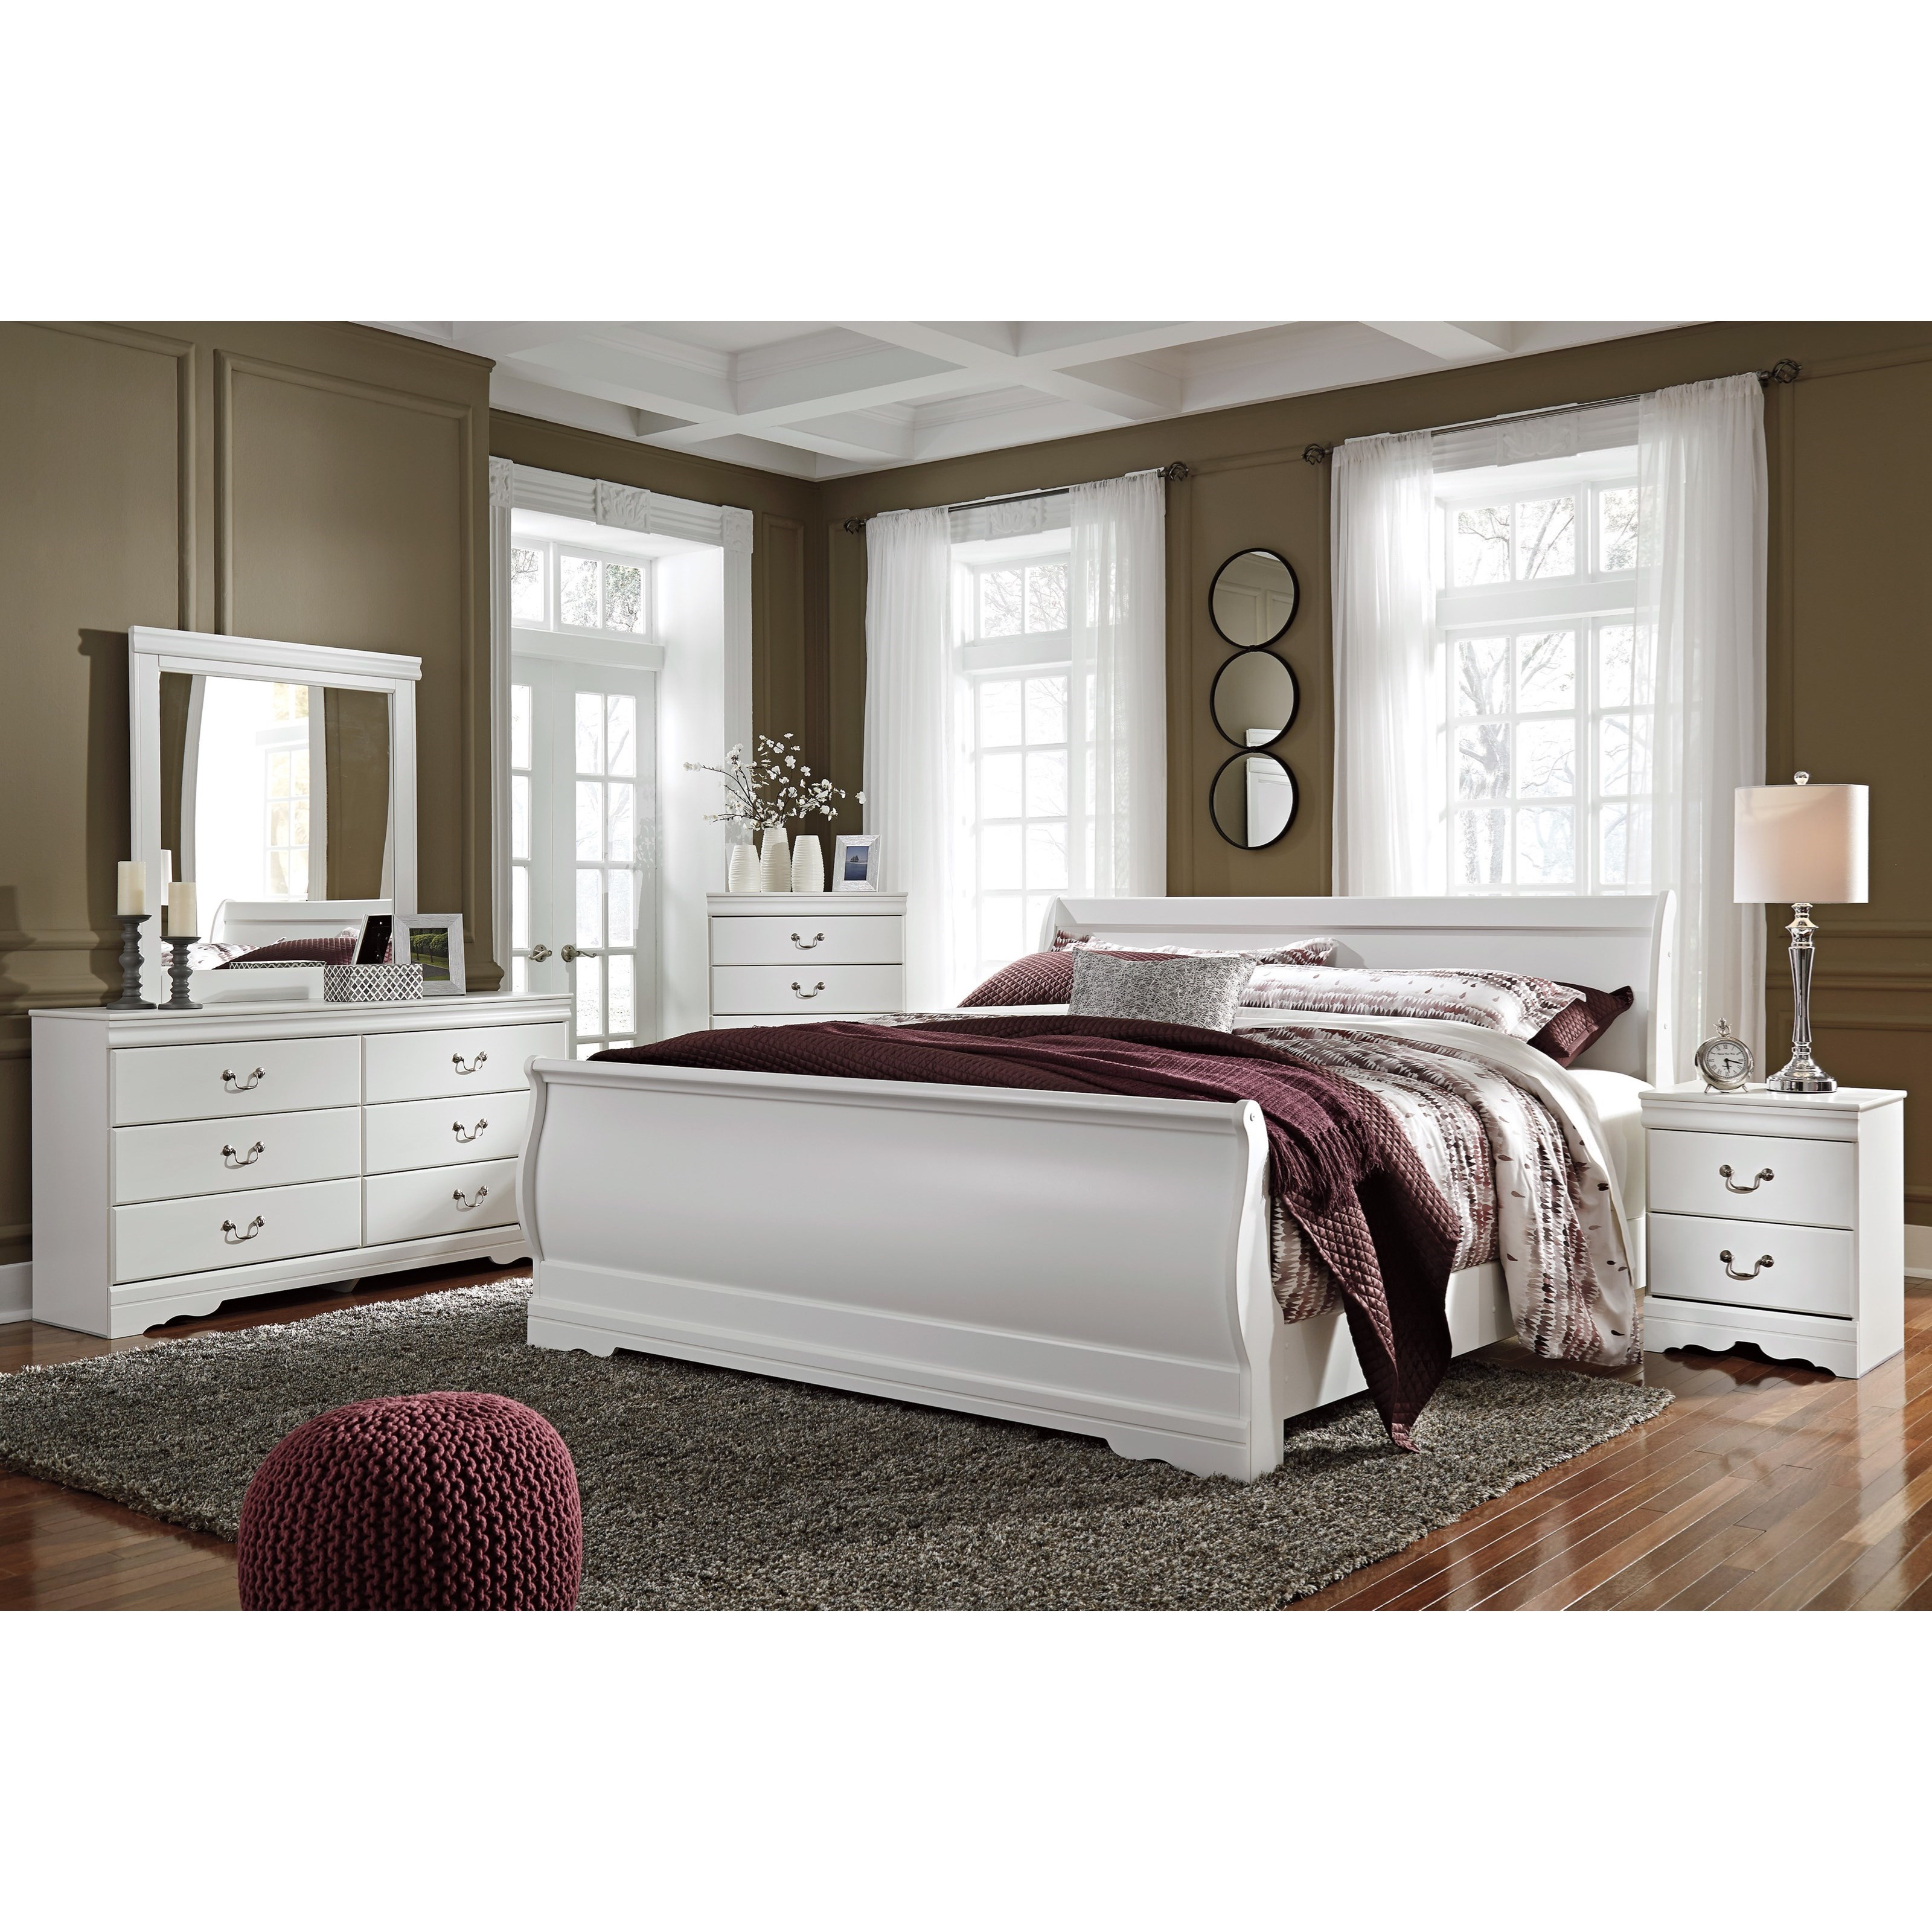 Signature Design By Ashley Anarasia 4 Piece King Bedroom Group Rotmans Bedroom Groups